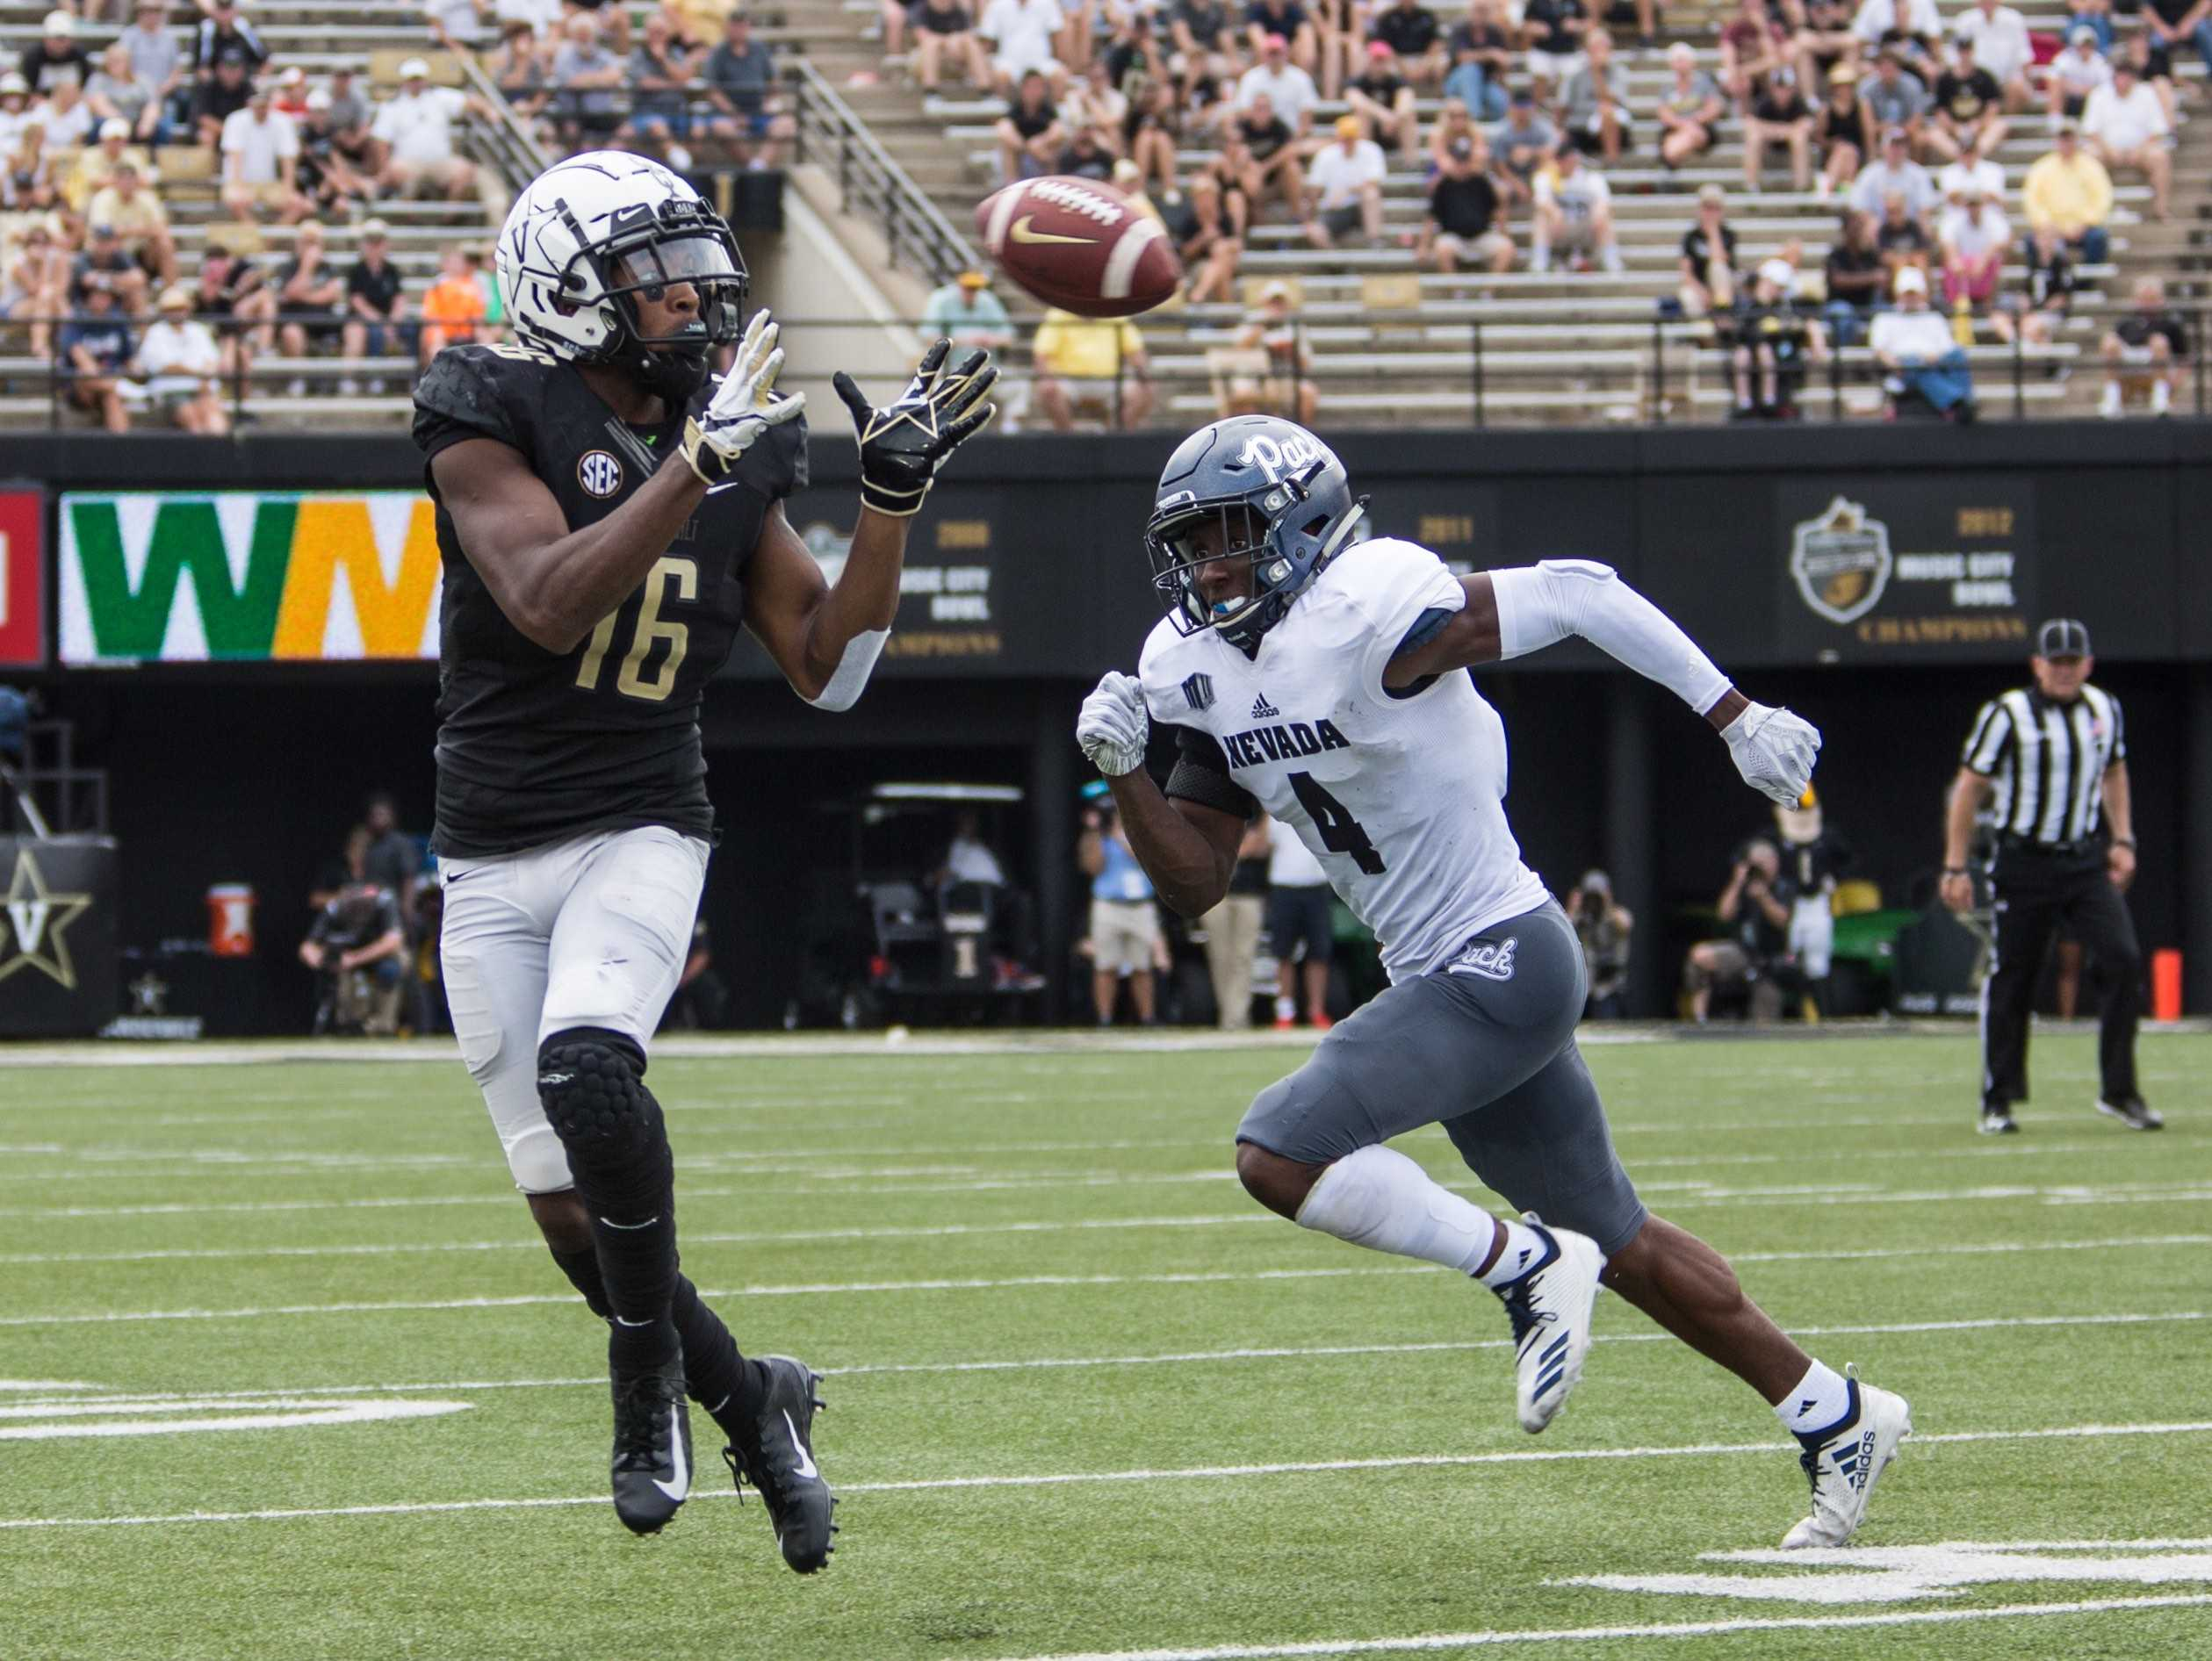 The Commodores defeat Nevada on Saturday, September 8, 2018. (Photo by Claire Barnett)